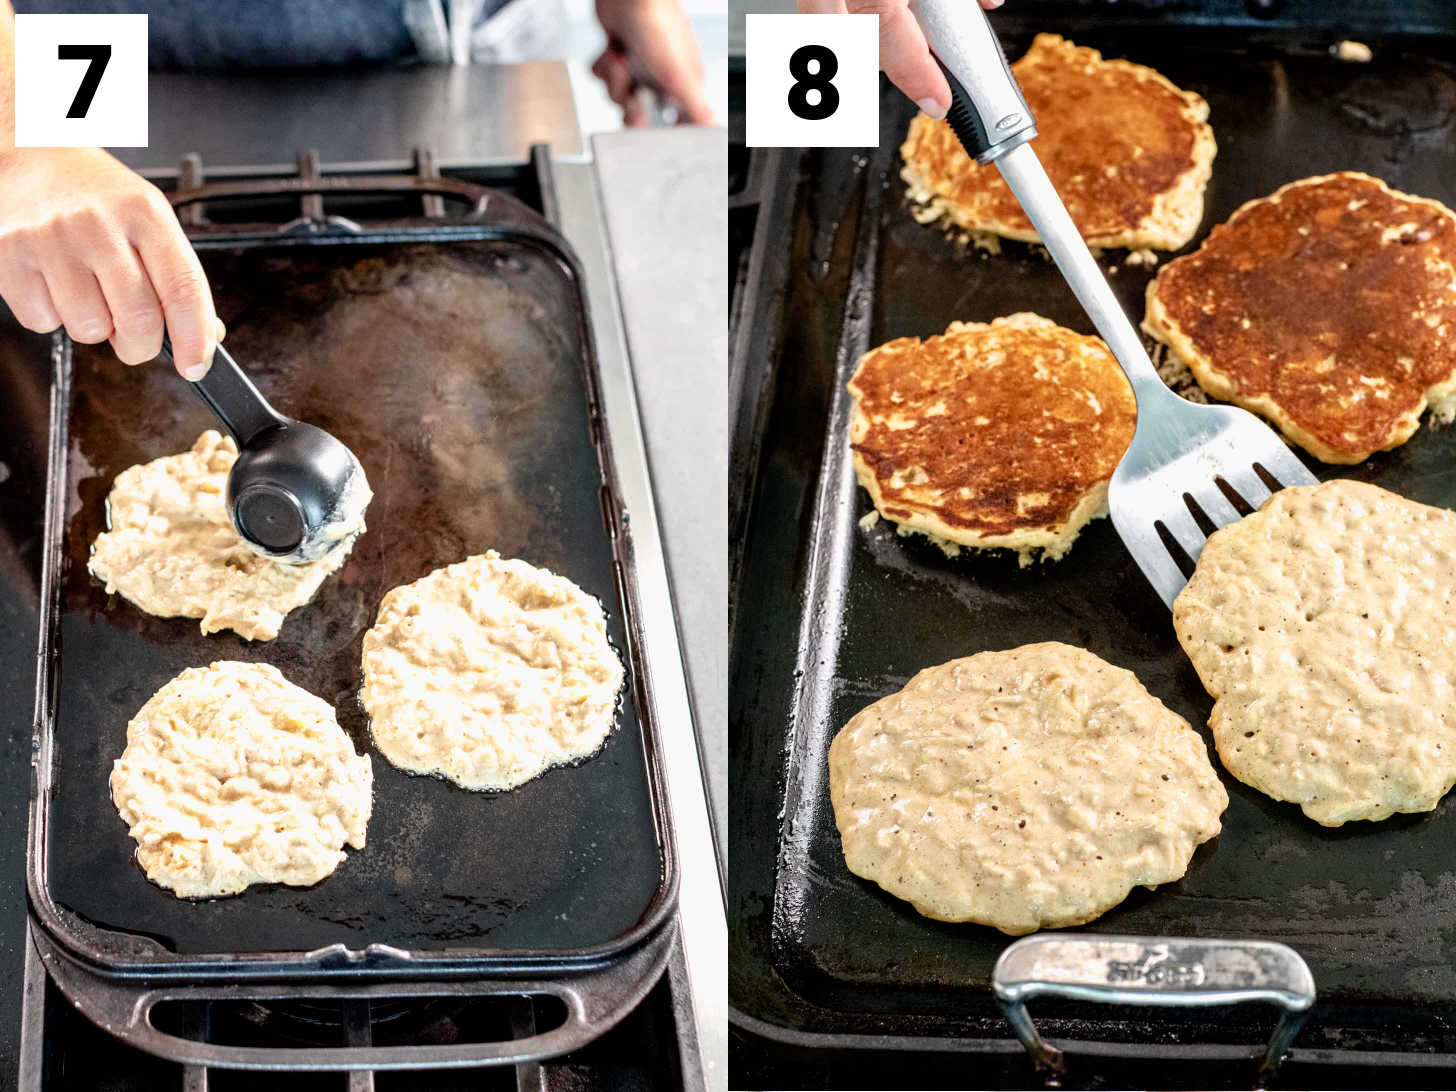 spread the batter out into rounds and flip after two to three minutes